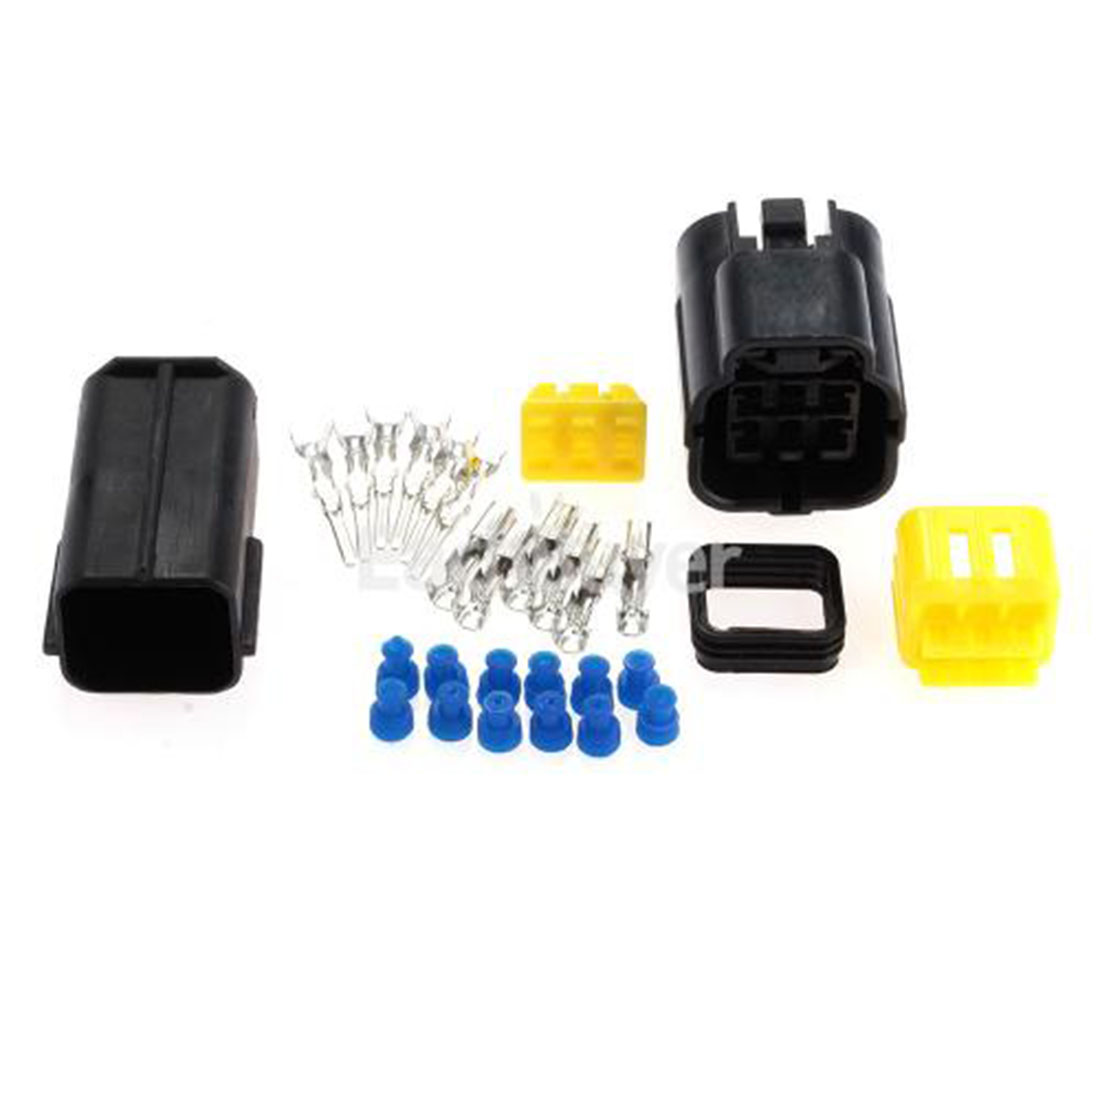 top quality 1 kit 6 pin way waterproof wire connector plug. Black Bedroom Furniture Sets. Home Design Ideas